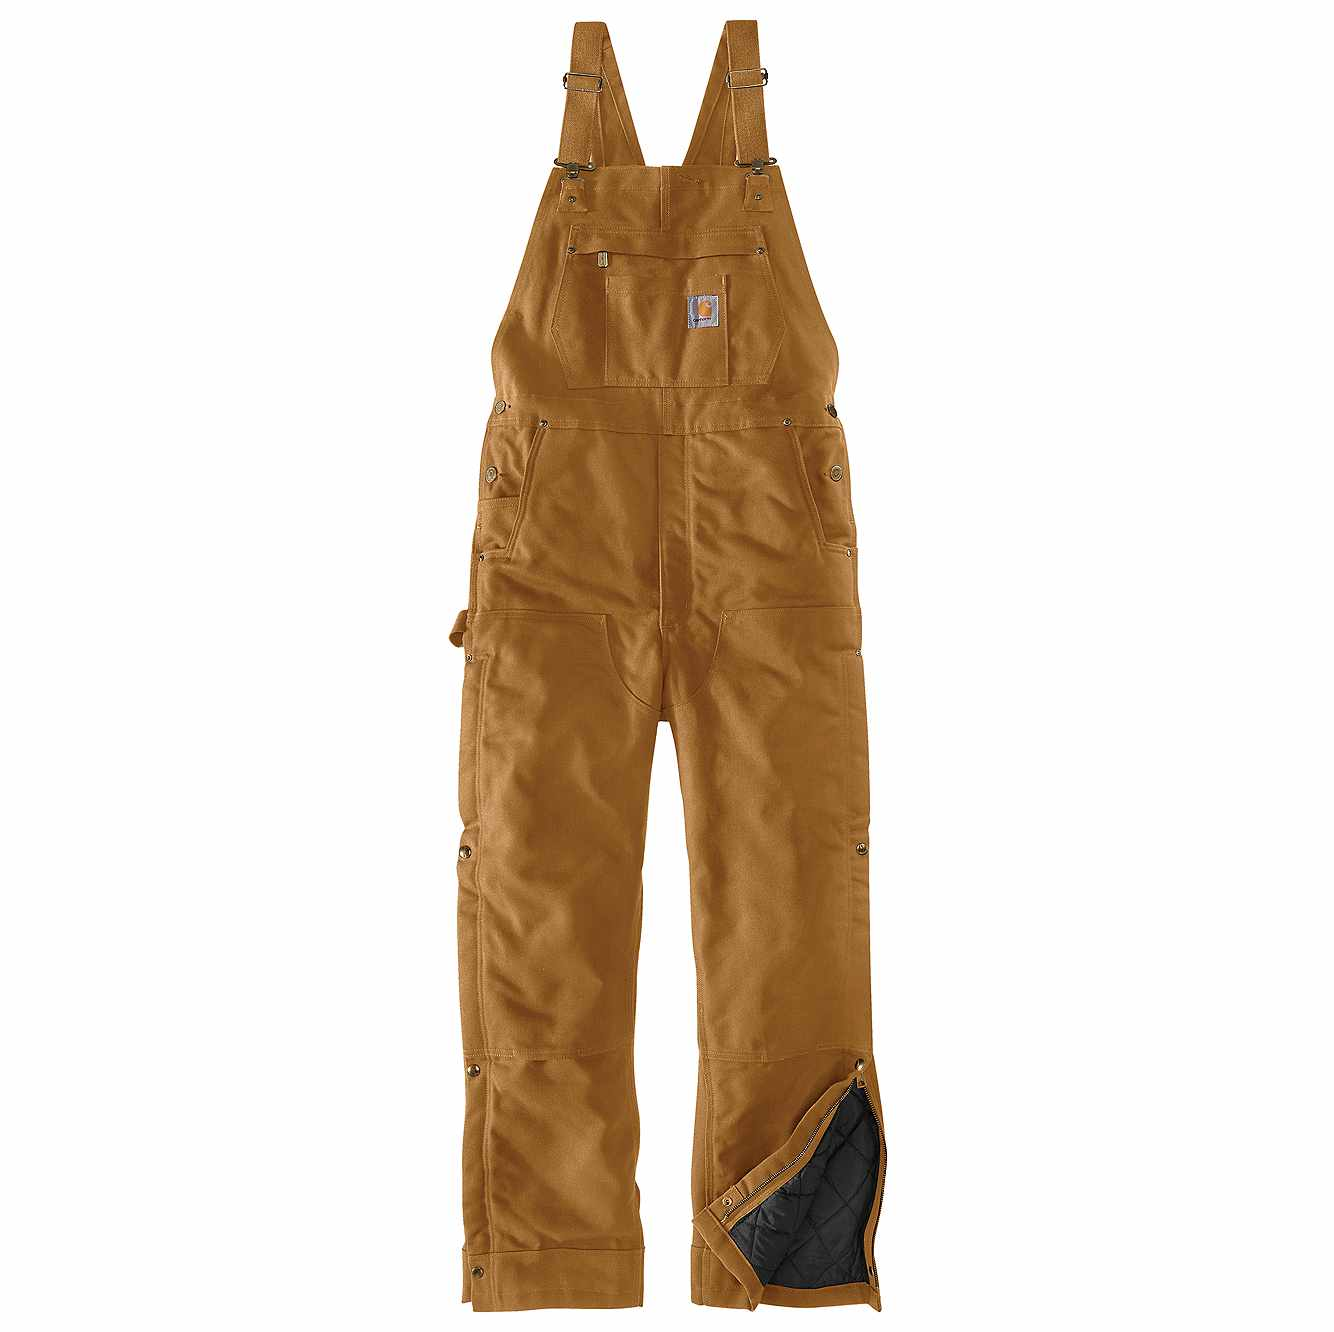 Picture of Loose Fit Firm Duck Insulated Bib Overall in Carhartt Brown